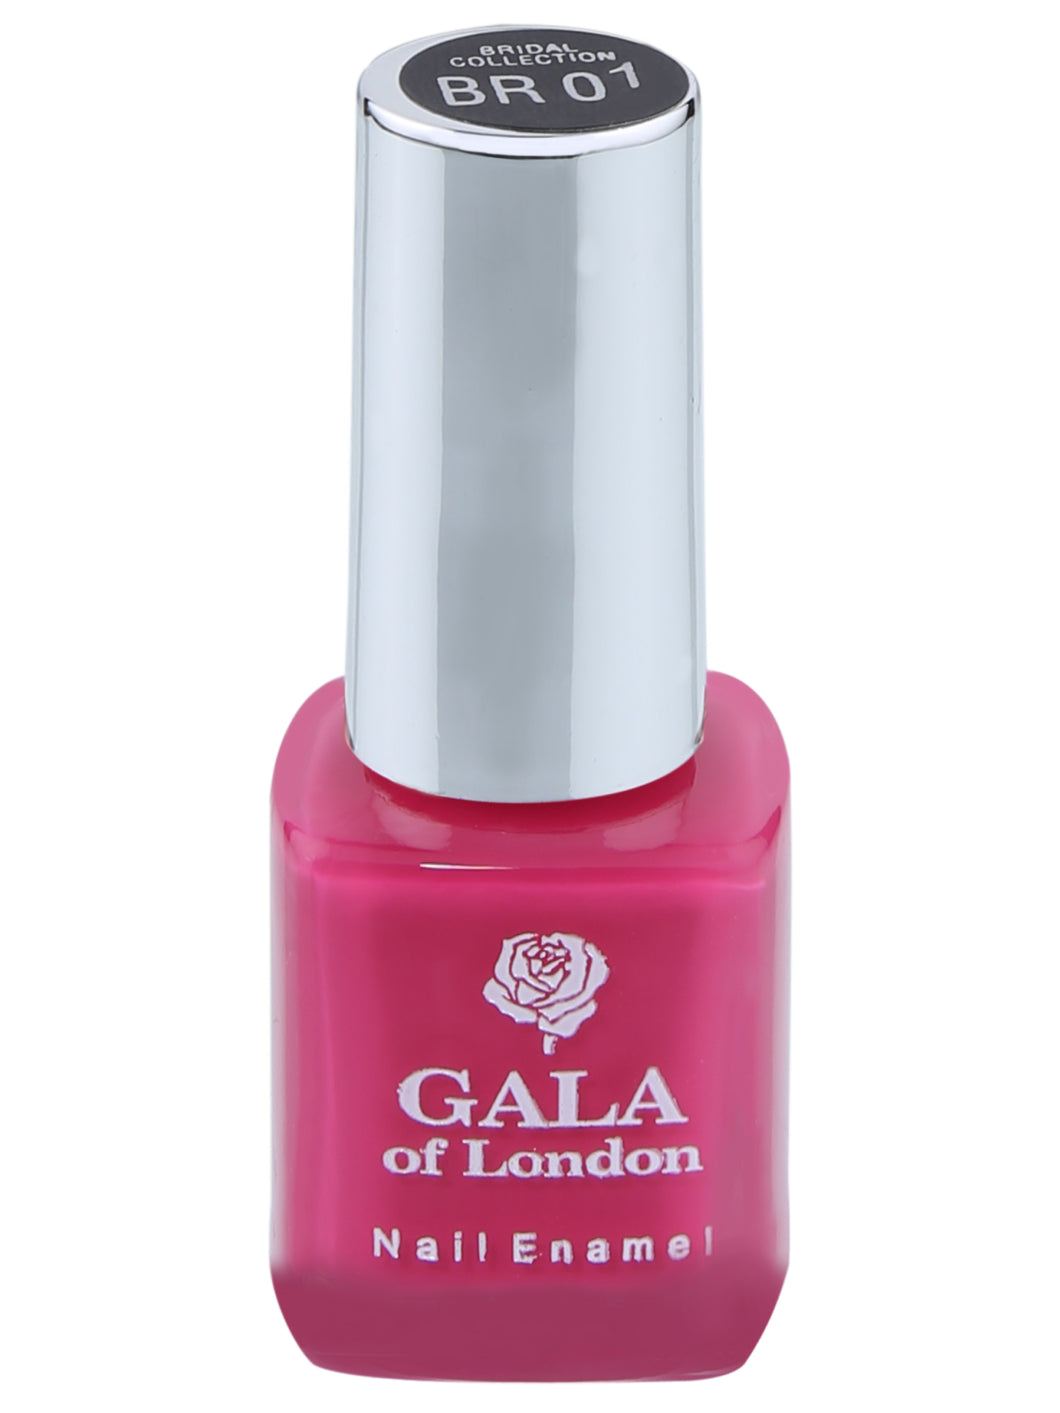 Gala of London Bridal Nail Polish - Pink Glossy BR01